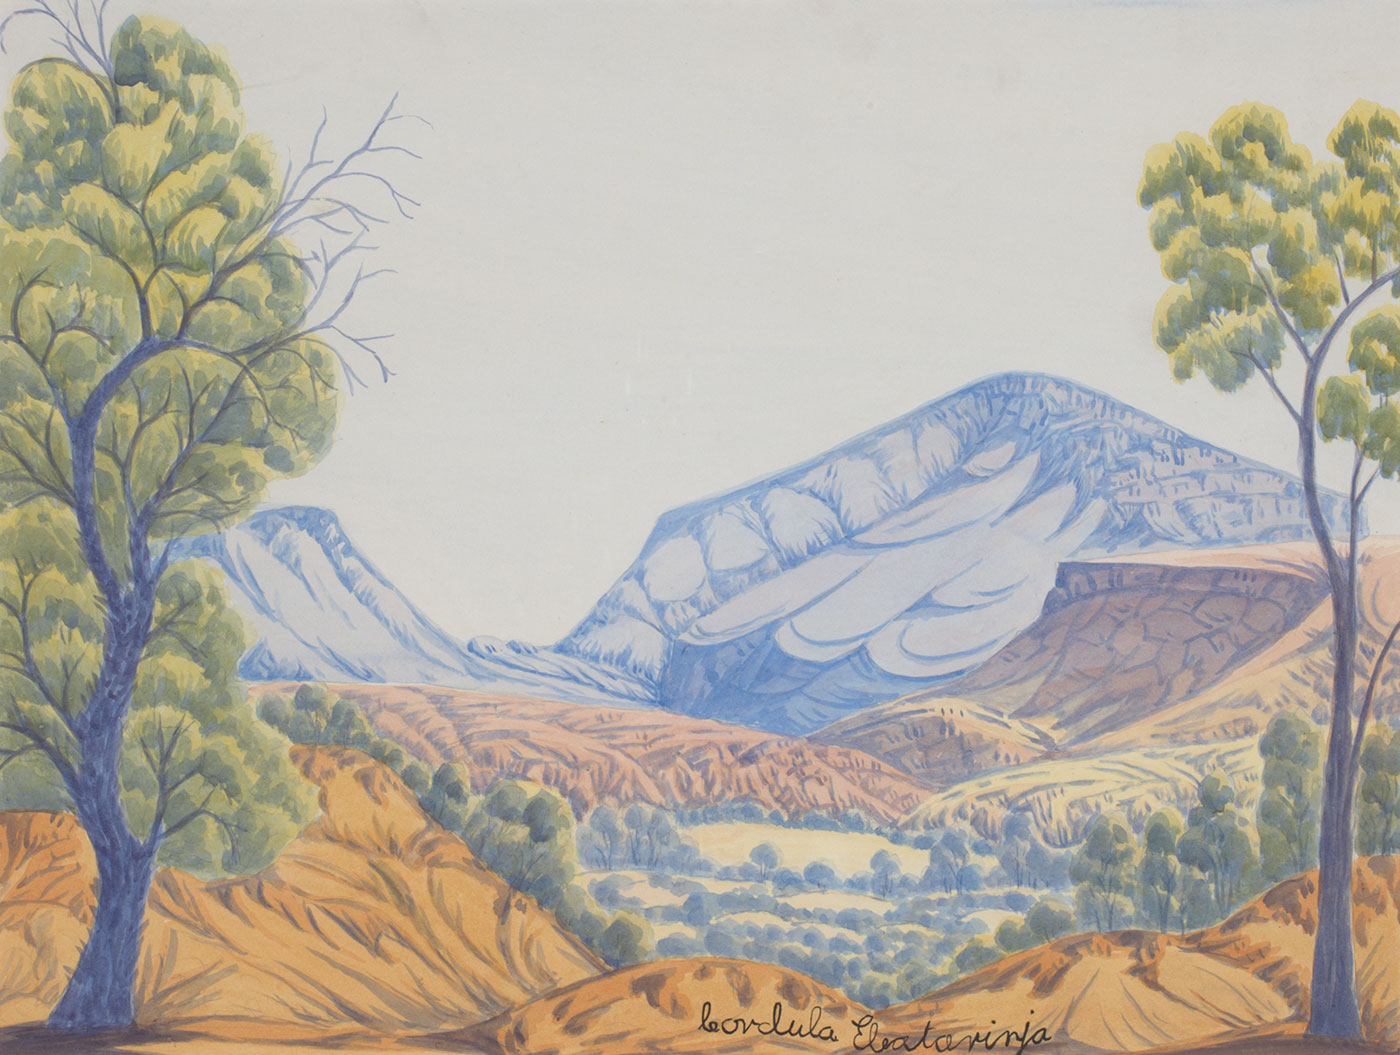 A watercolour painting on board of a landscape featuring two blue trees with green and yellow leaves with two blue mountains in the background.